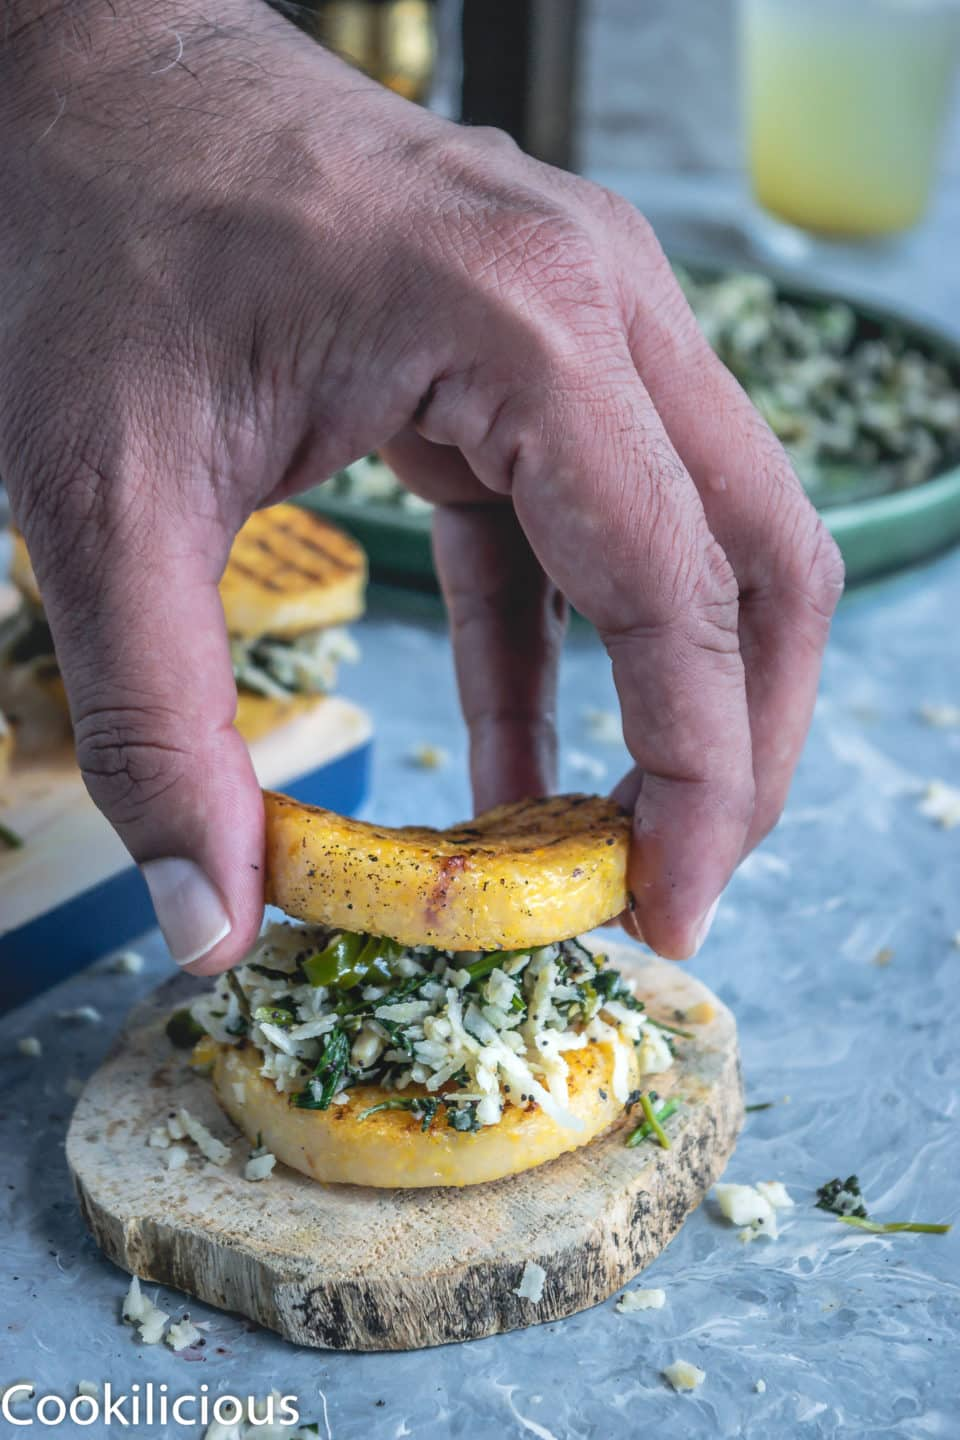 a hand placing a grilled polenta over the prepared cilantro masala, like a sandwich makes a great vegan gluten free recipes